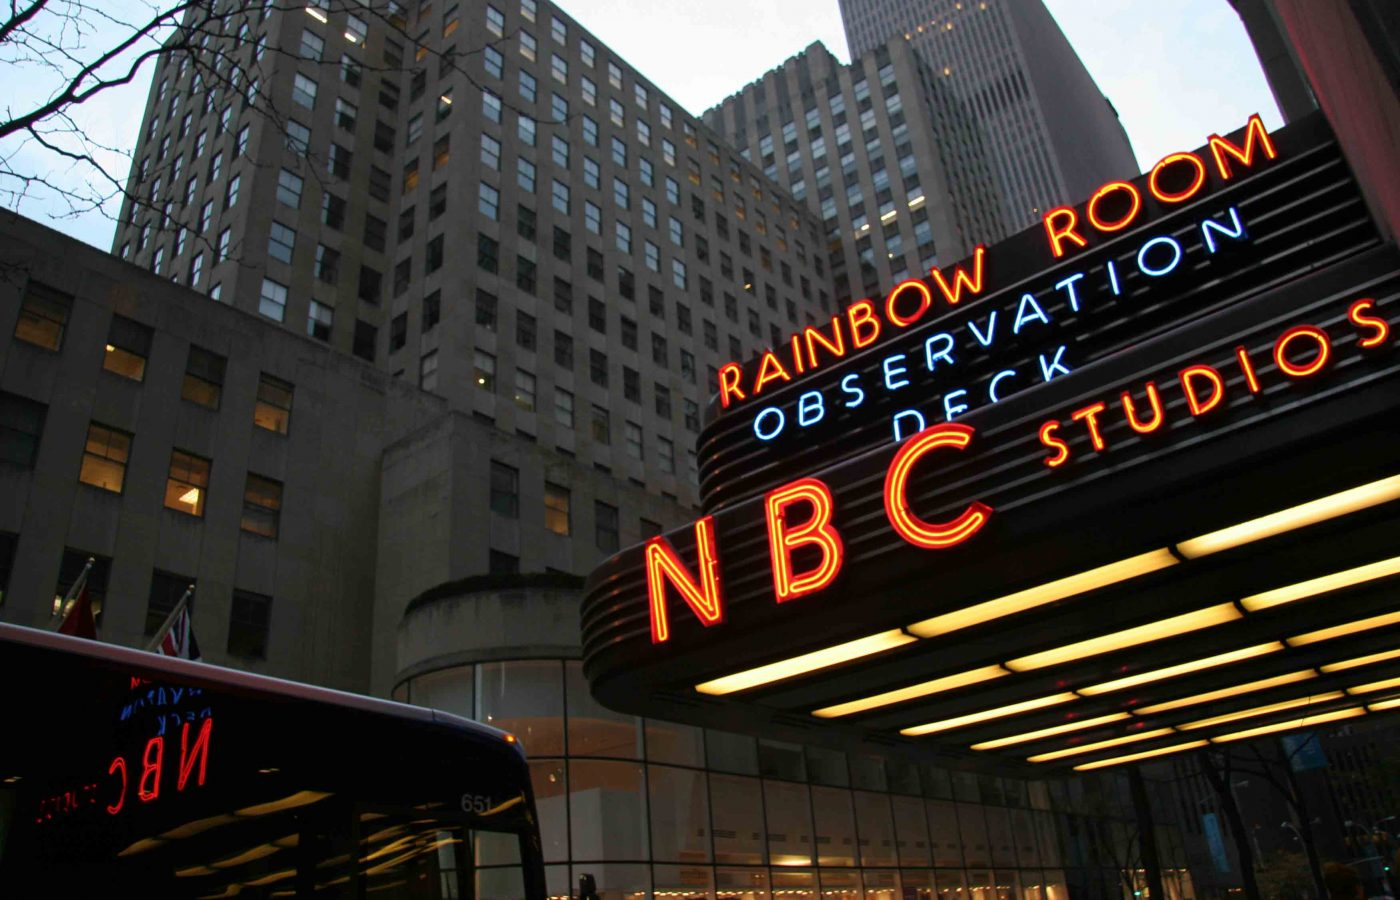 NBC Studio Tour in New York